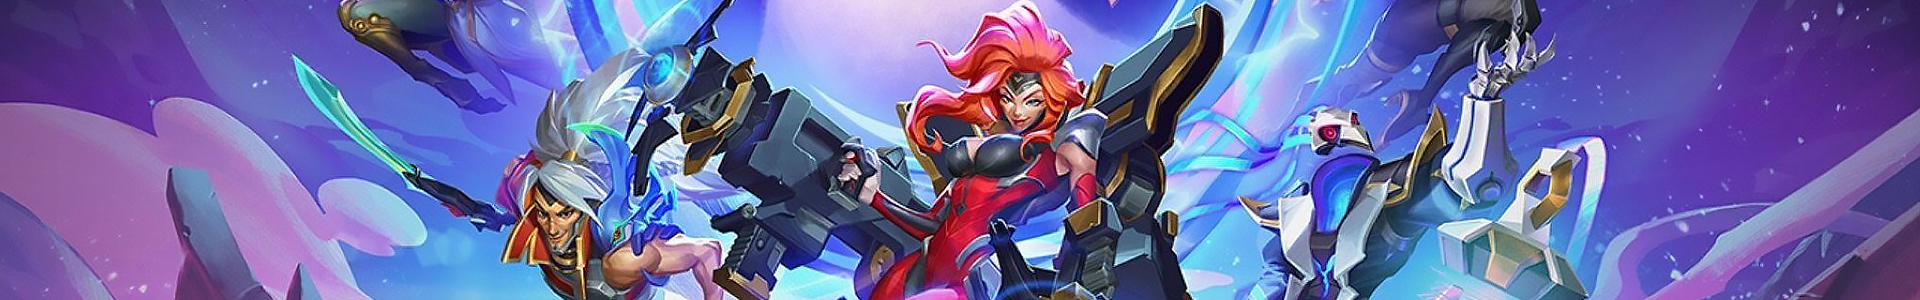 Banner media of Teamfight Tactics Mobile video game.